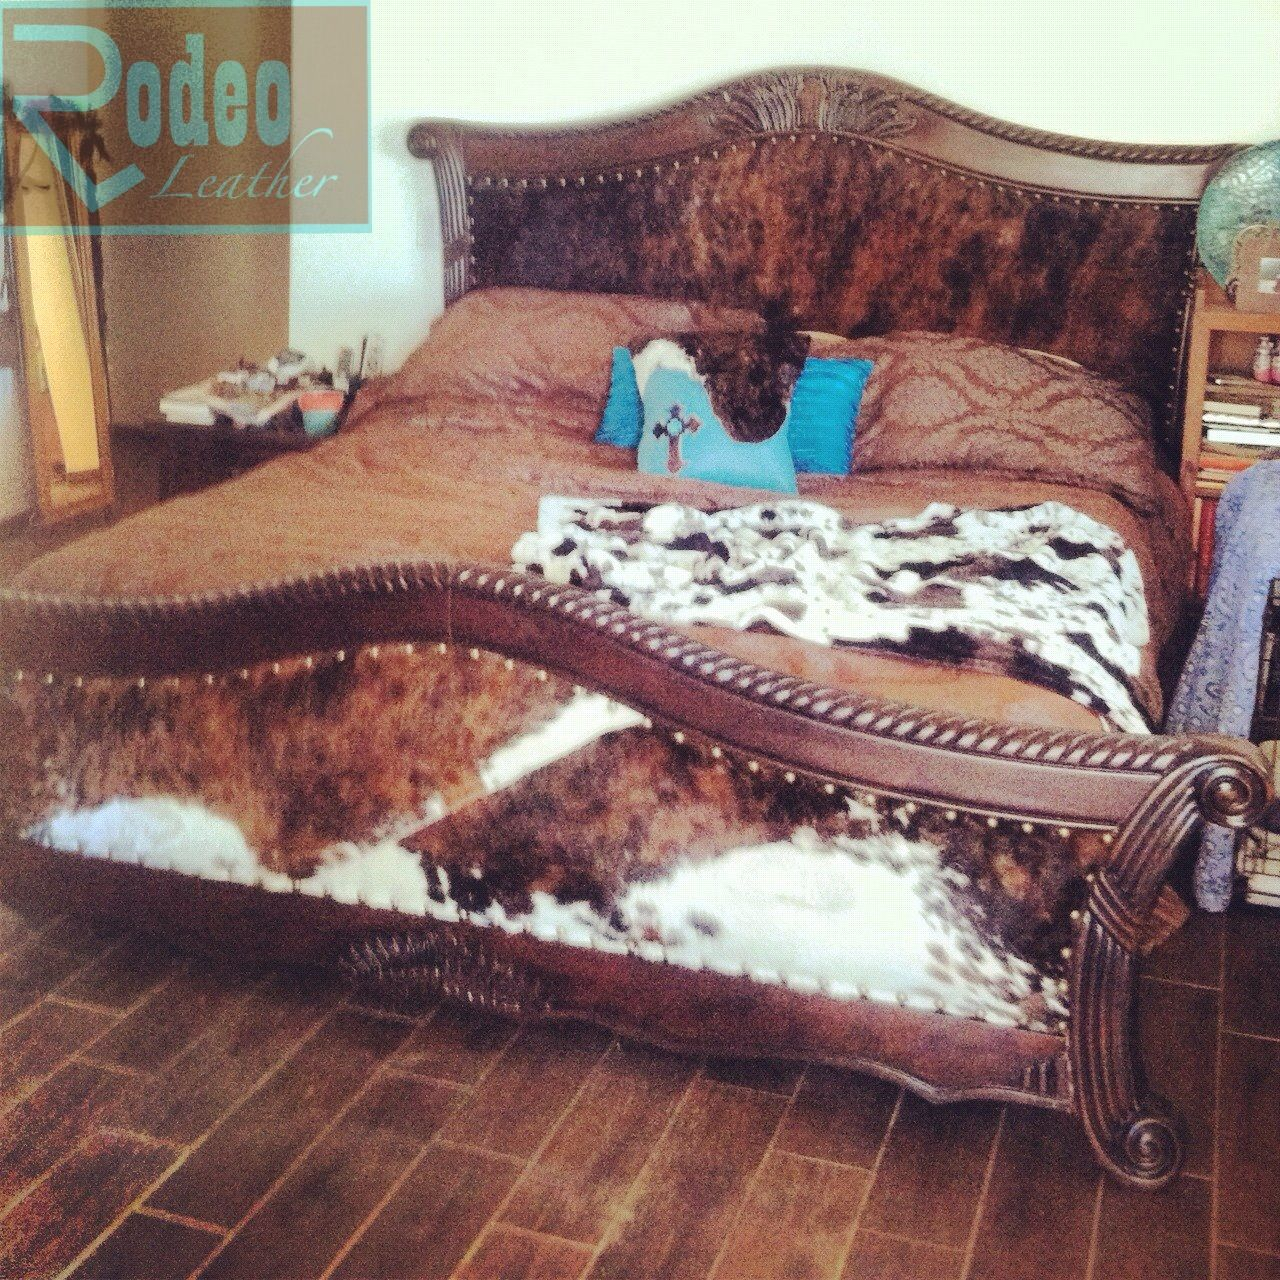 Wood And Leather Headboard: $60 Goodwill Cracked Wooden Bed. I Upholstered With Padded